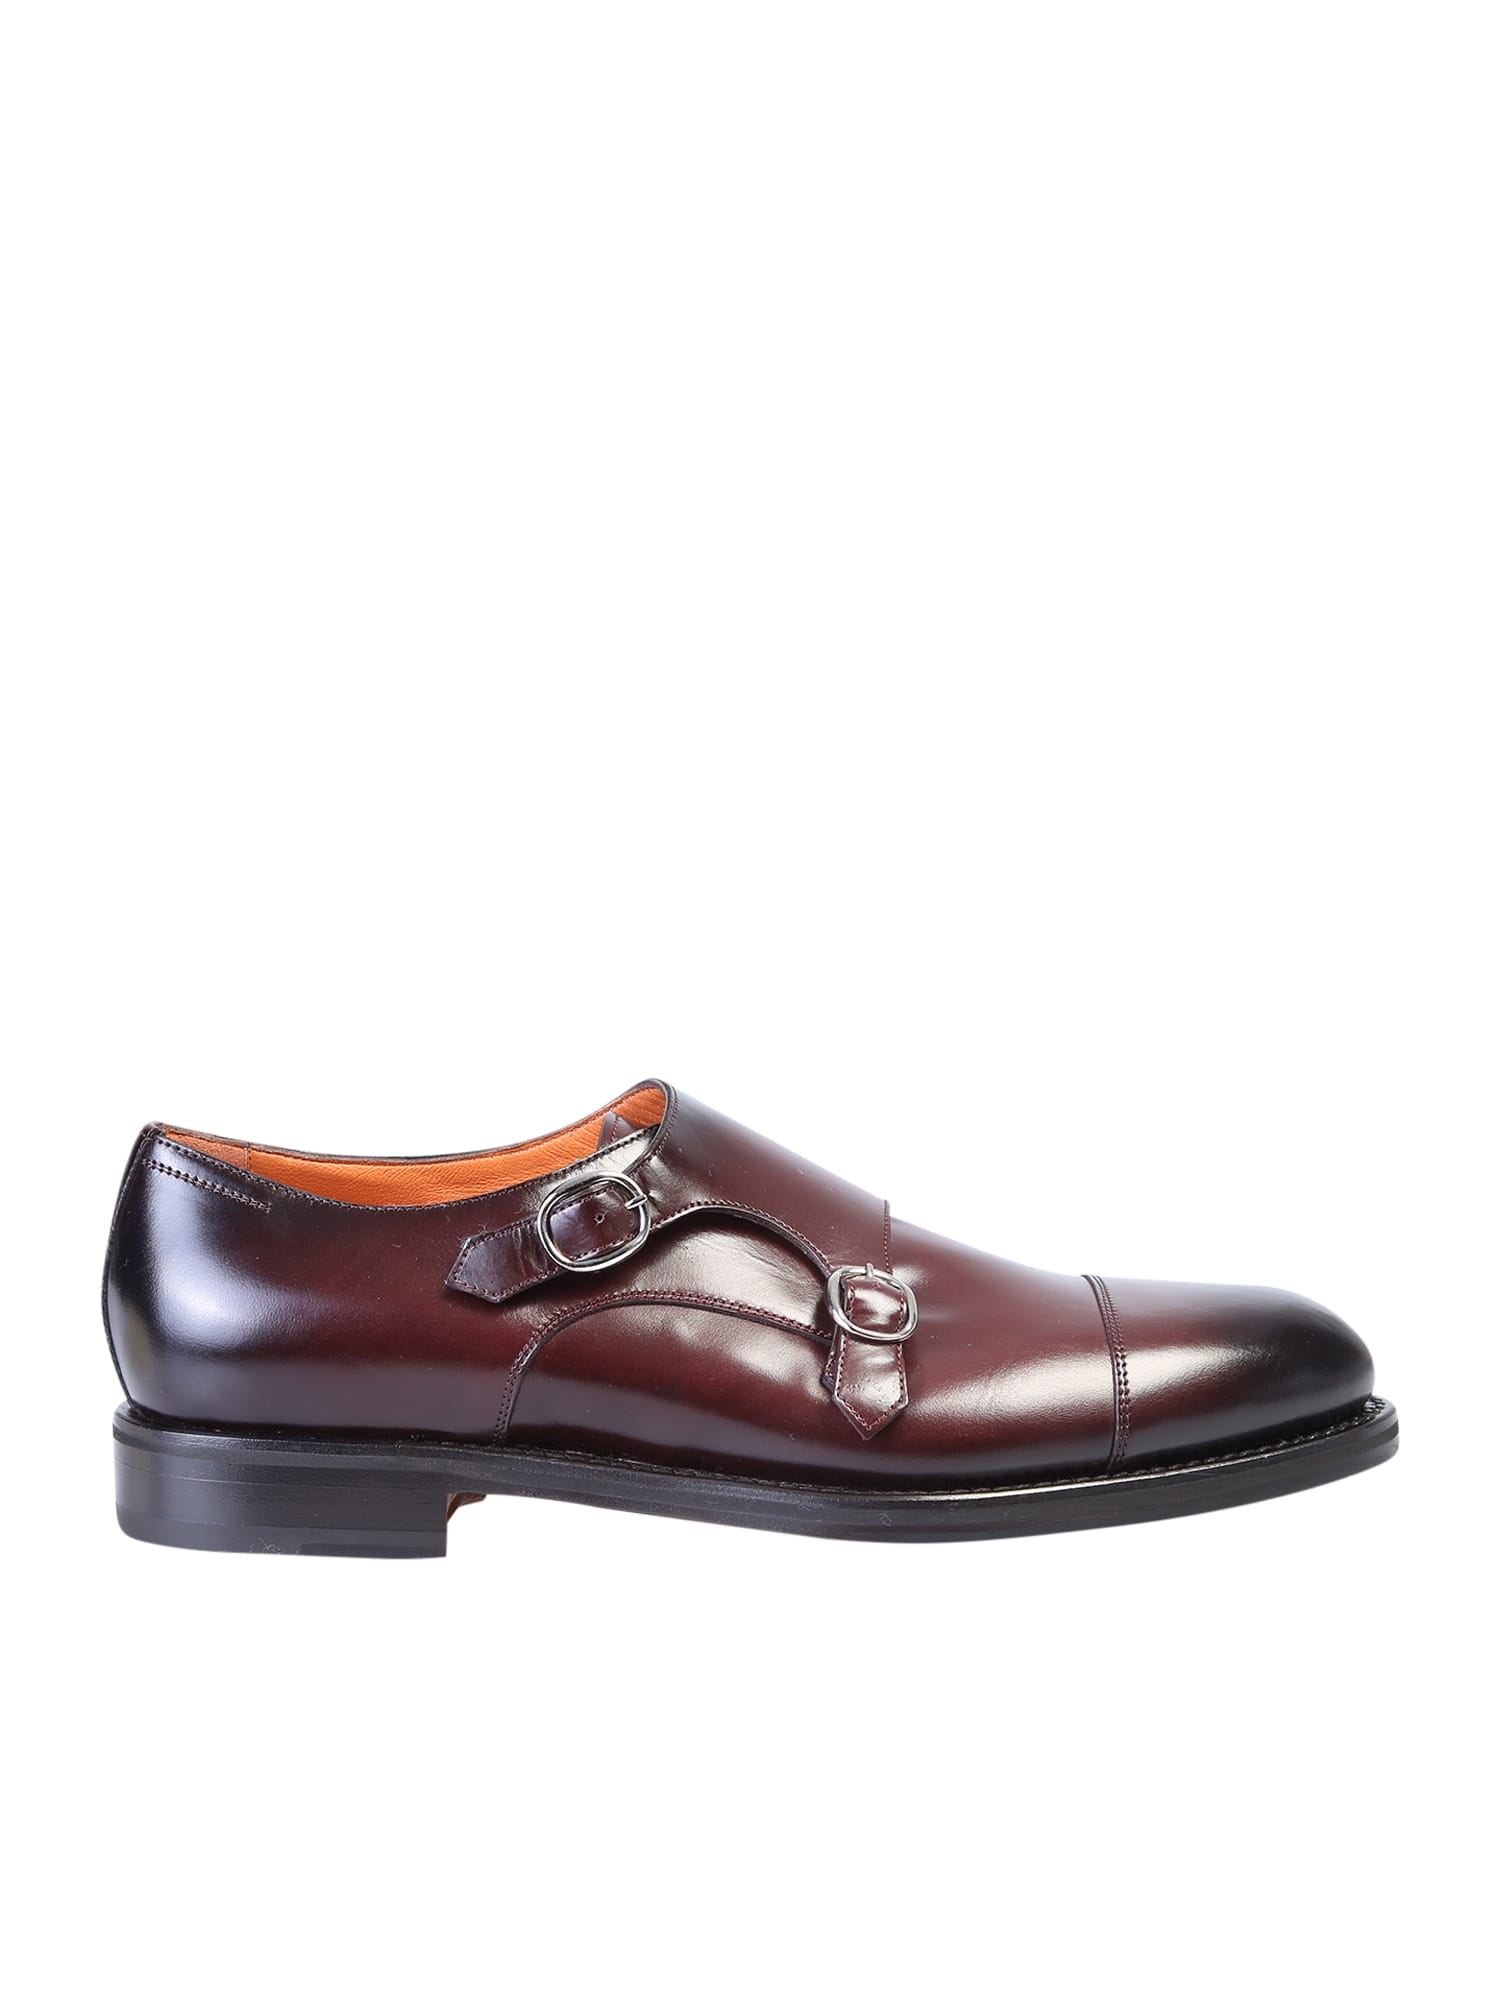 Santoni Shoes MONKSTRAP SHOES